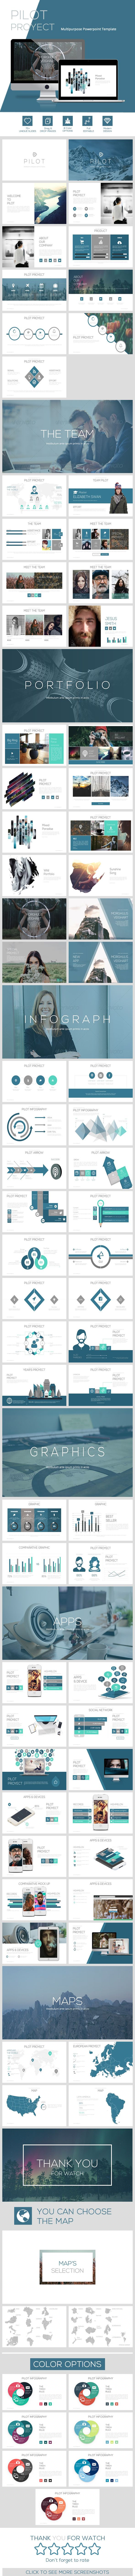 PILOT Proyect Powerpoint Template. Download here: http://graphicriver.net/item/pilot-proyect-powerpoint-template/16709325?ref=ksioks